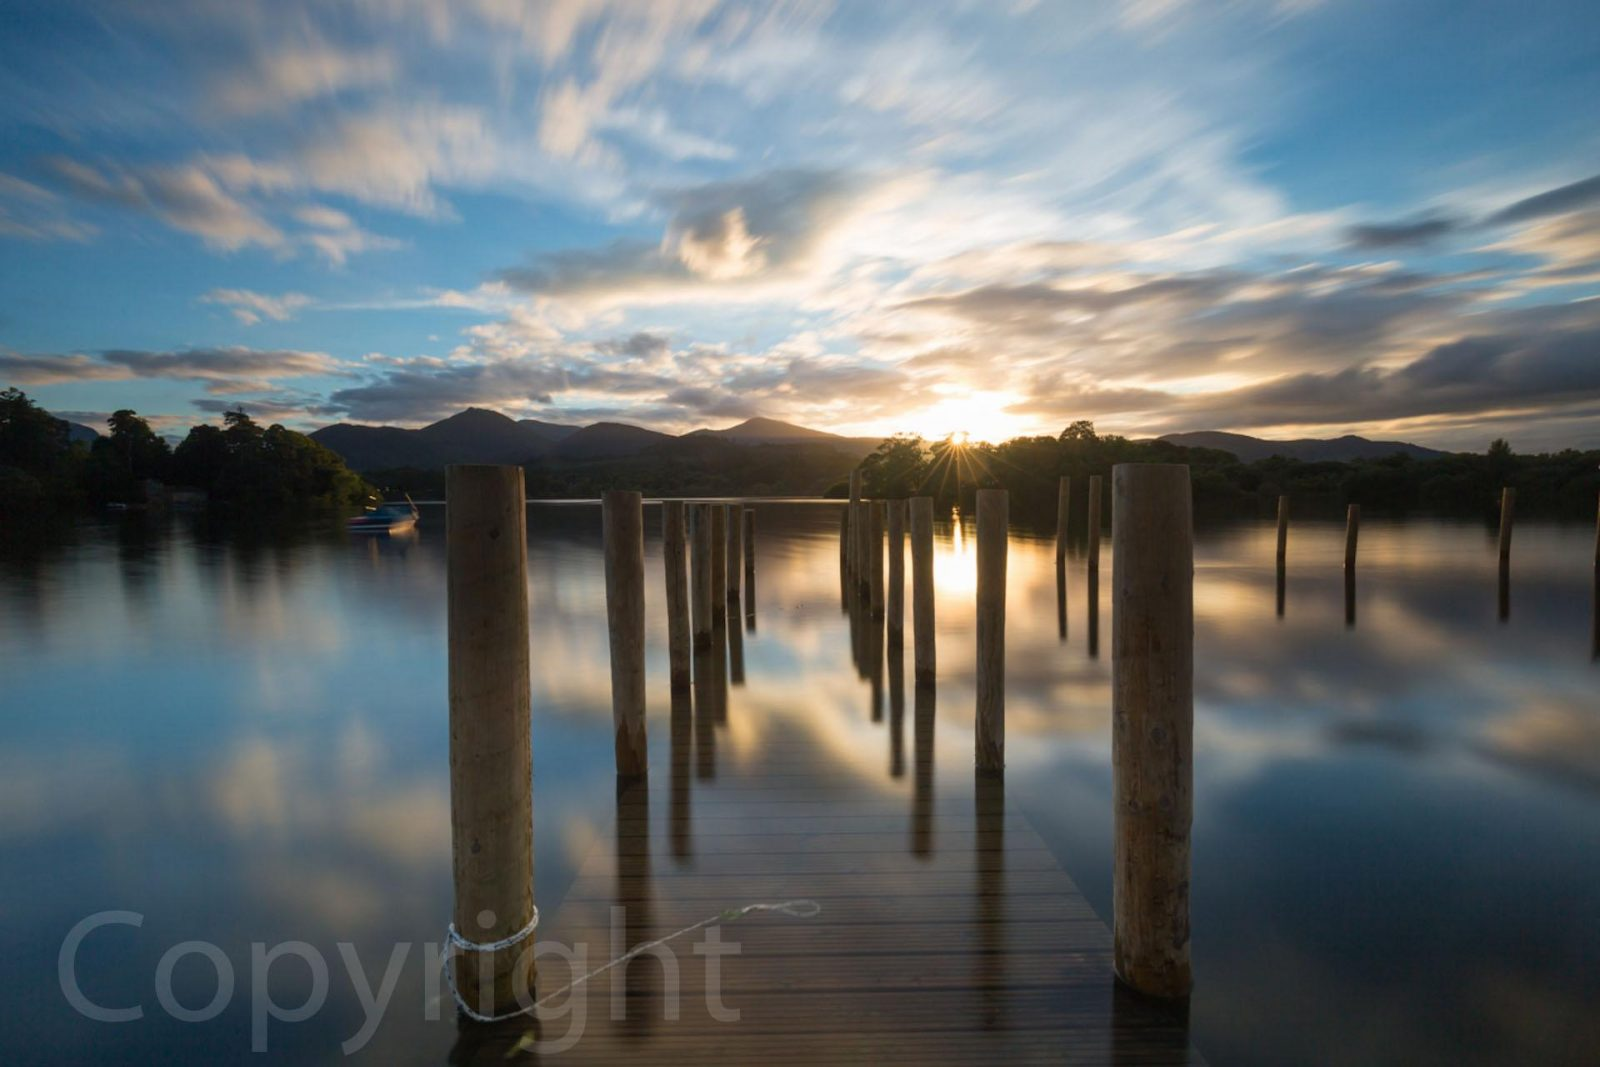 Mike Morley's photo of Derwent Water Jetty, winner in the print category at Knaresborough Camera Club. Story of the competition judging on Falcondale Life blog.